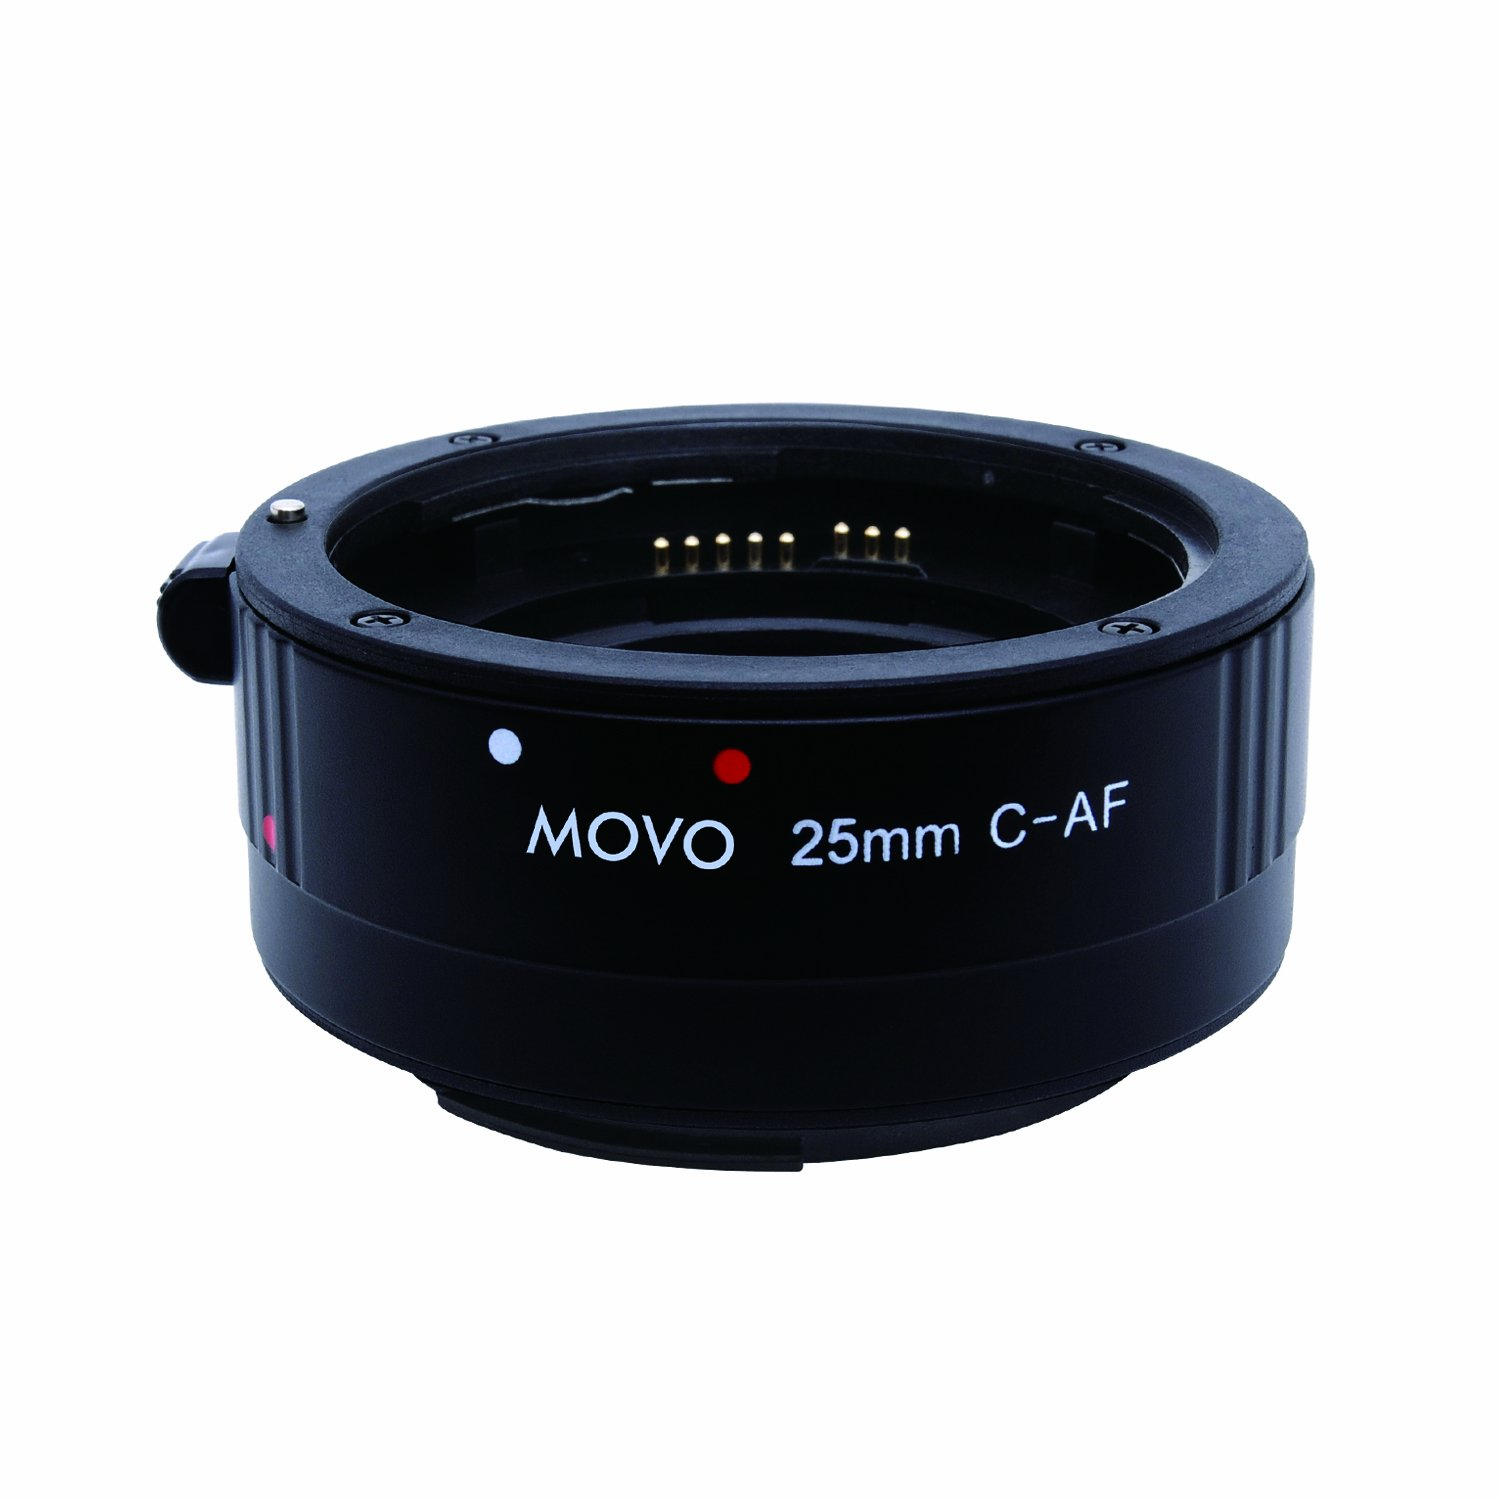 Movo Photo AF 25mm Macro Extension Tube for Canon EOS DSLR Camera Economy Mount